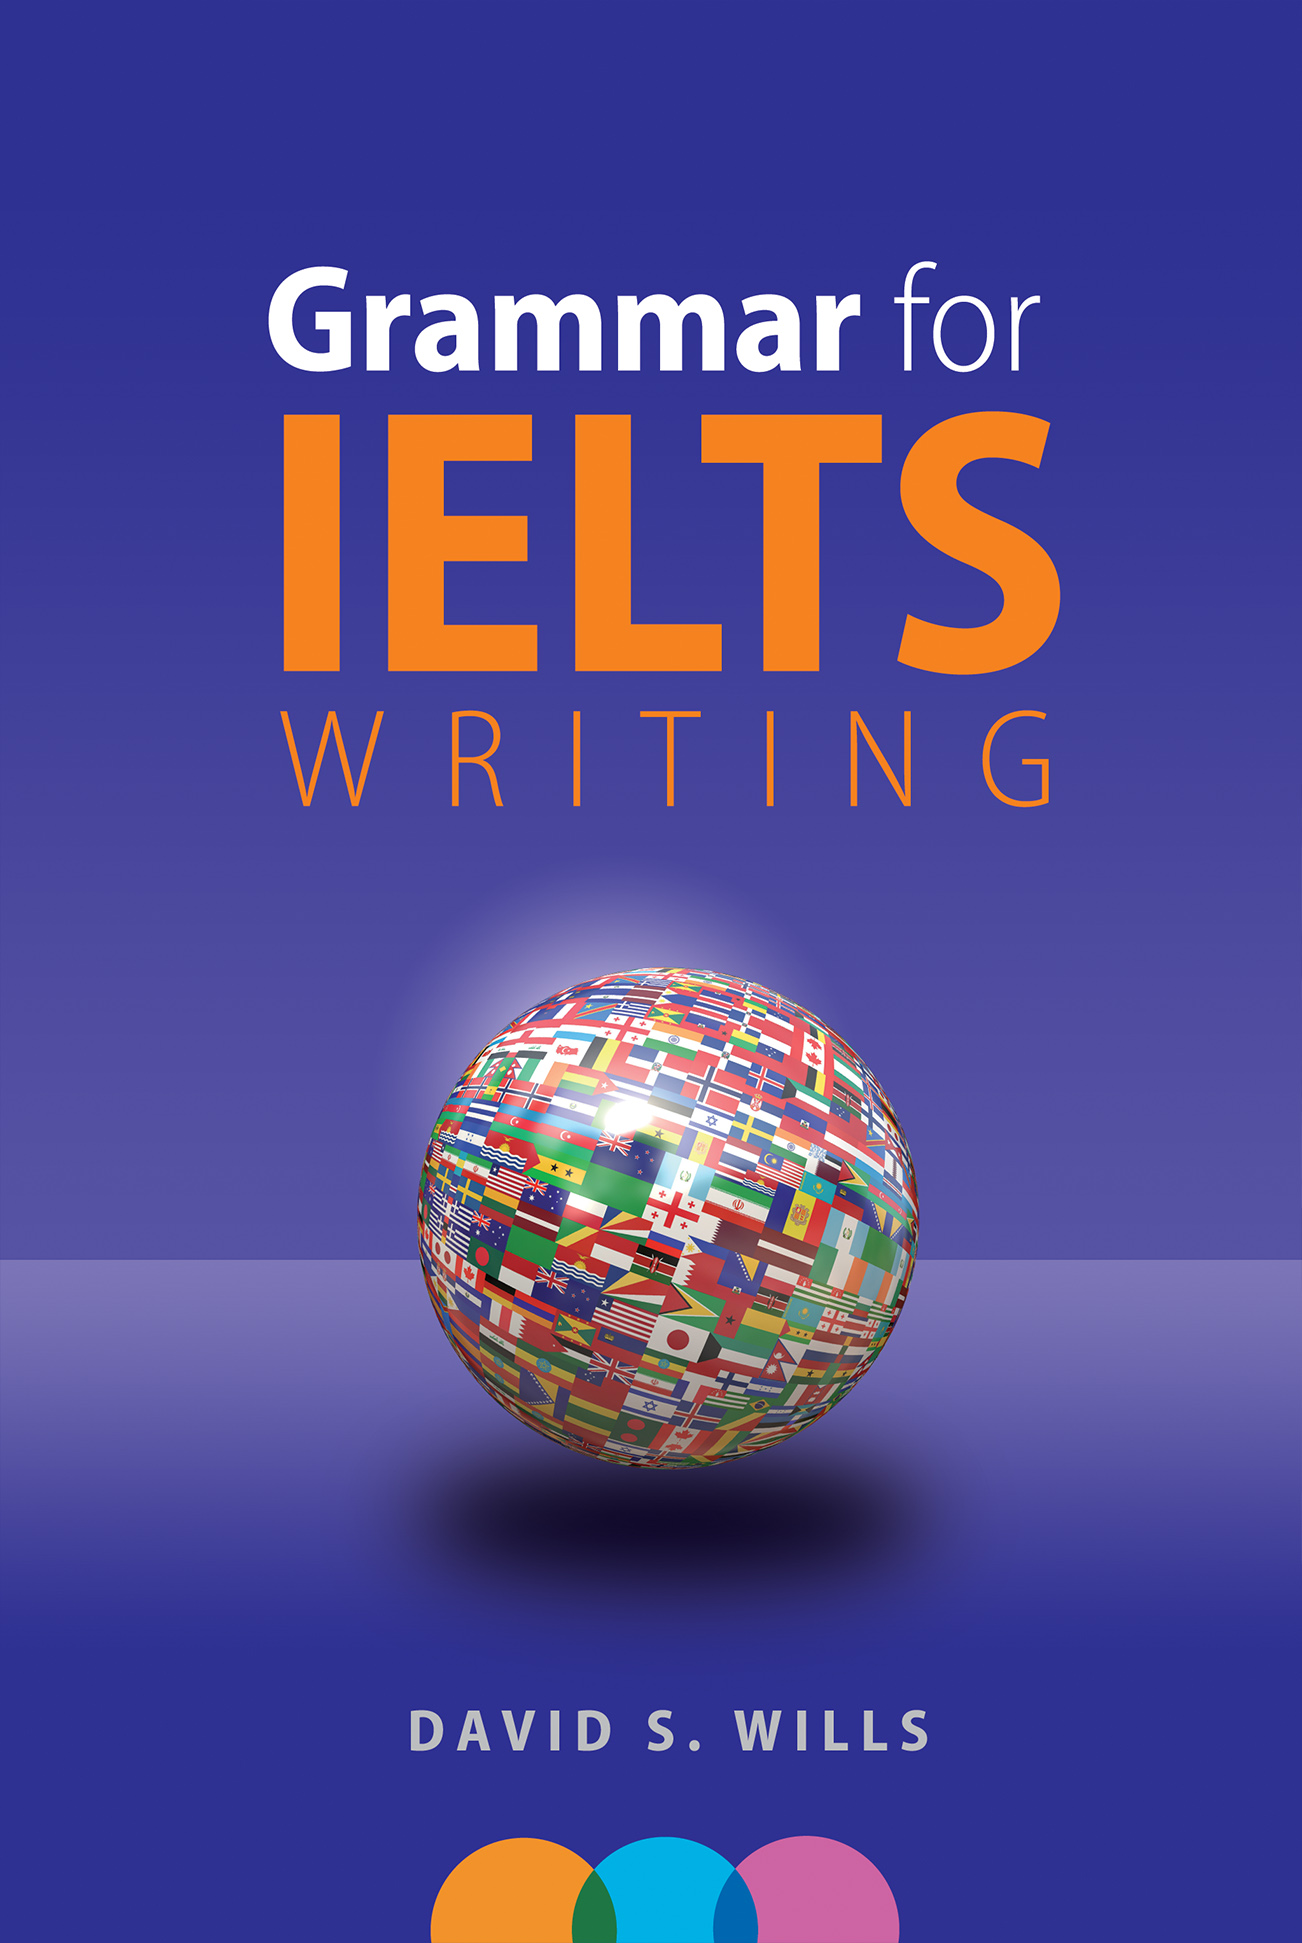 new cover Small - IELTS Speaking Topic: Childhood